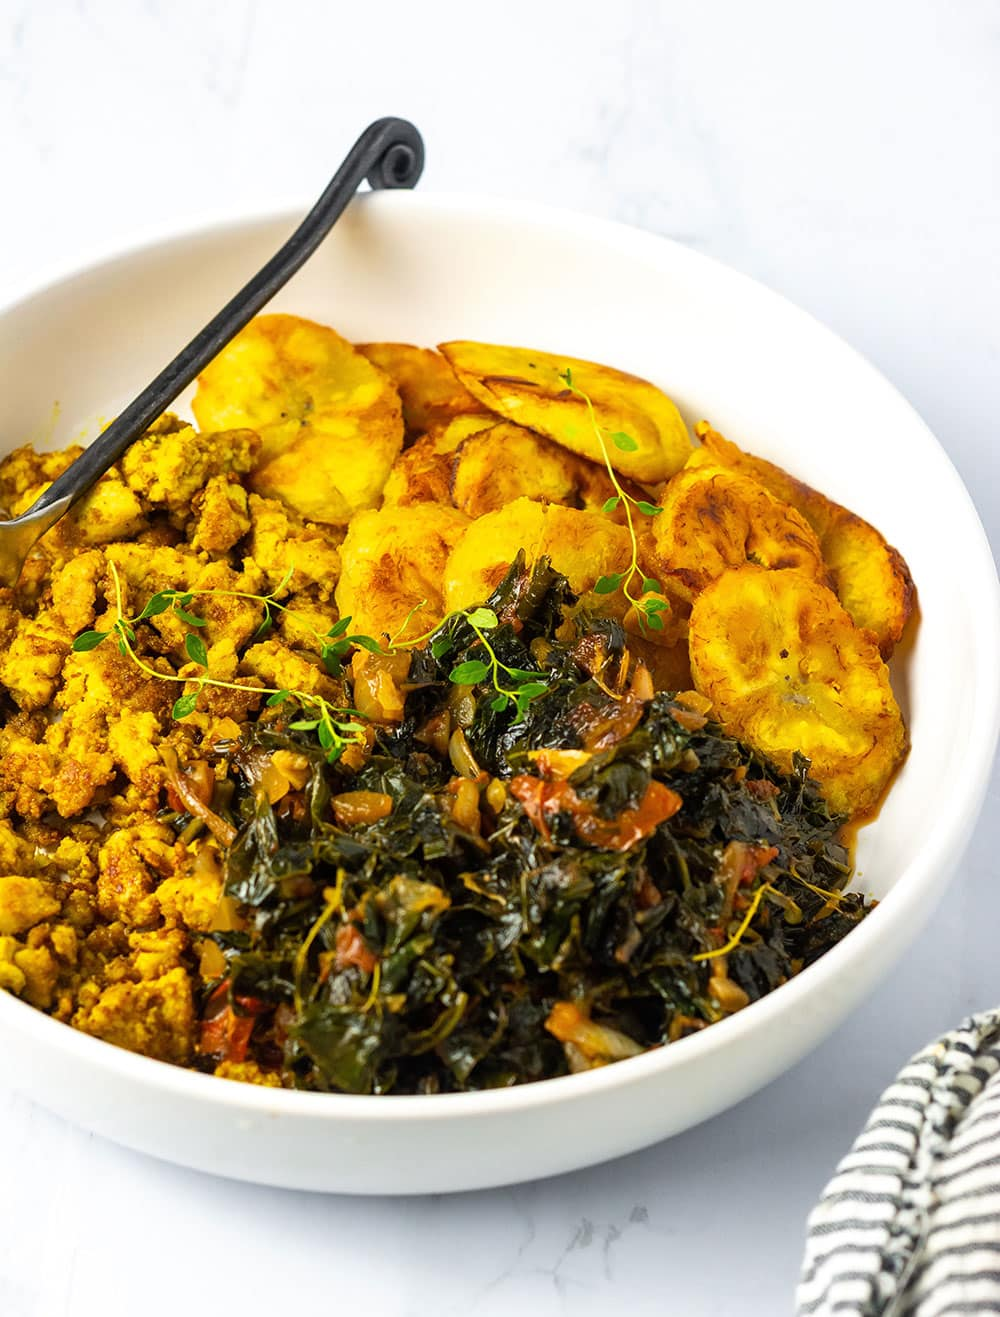 Steamed Chaya-Tree spinach in a bowl with tofu scramble, baked plantains with a fork with a black handle on a white background